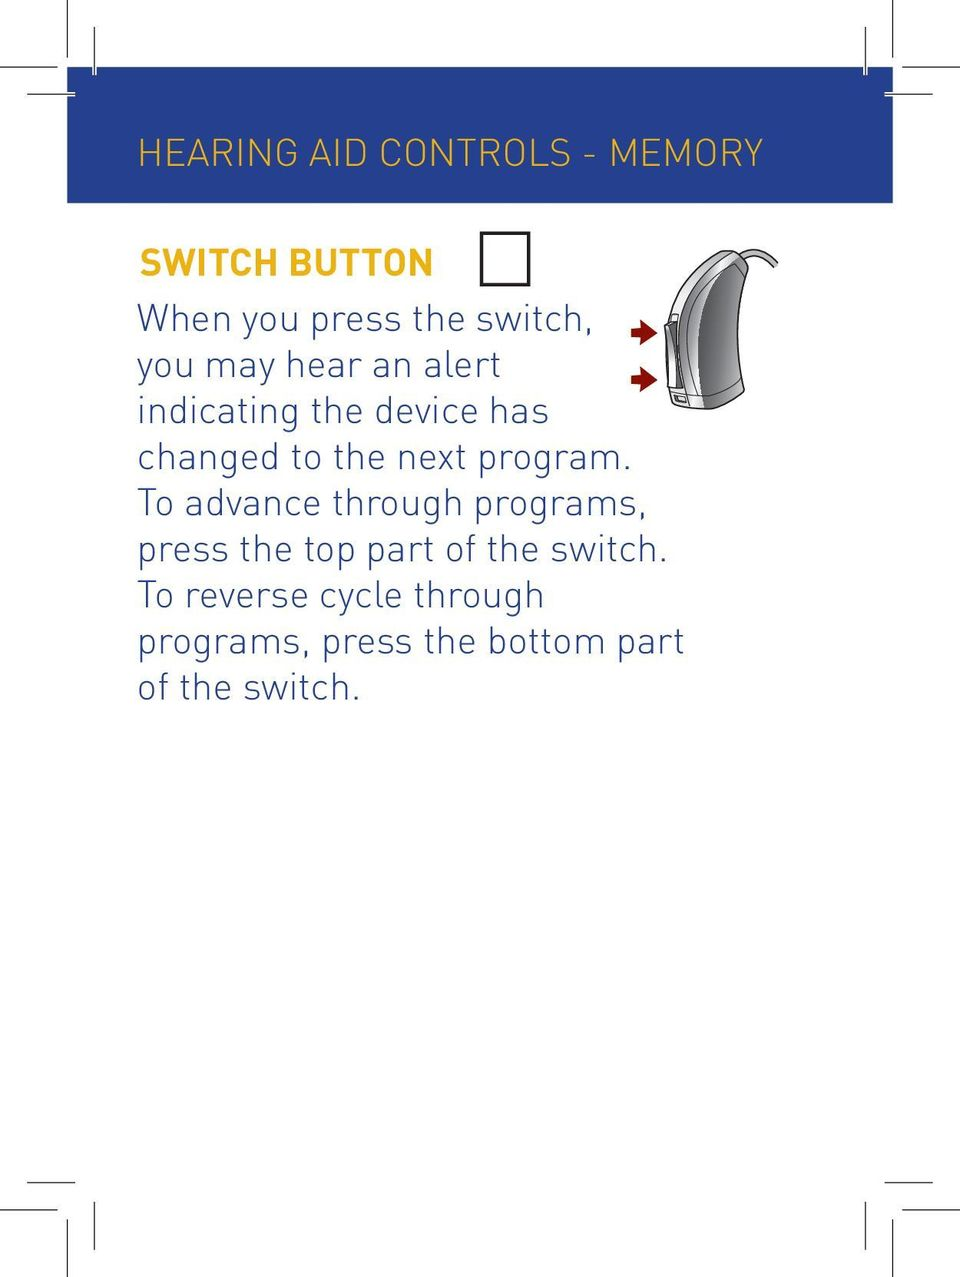 program. To advance through programs, press the top part of the switch.